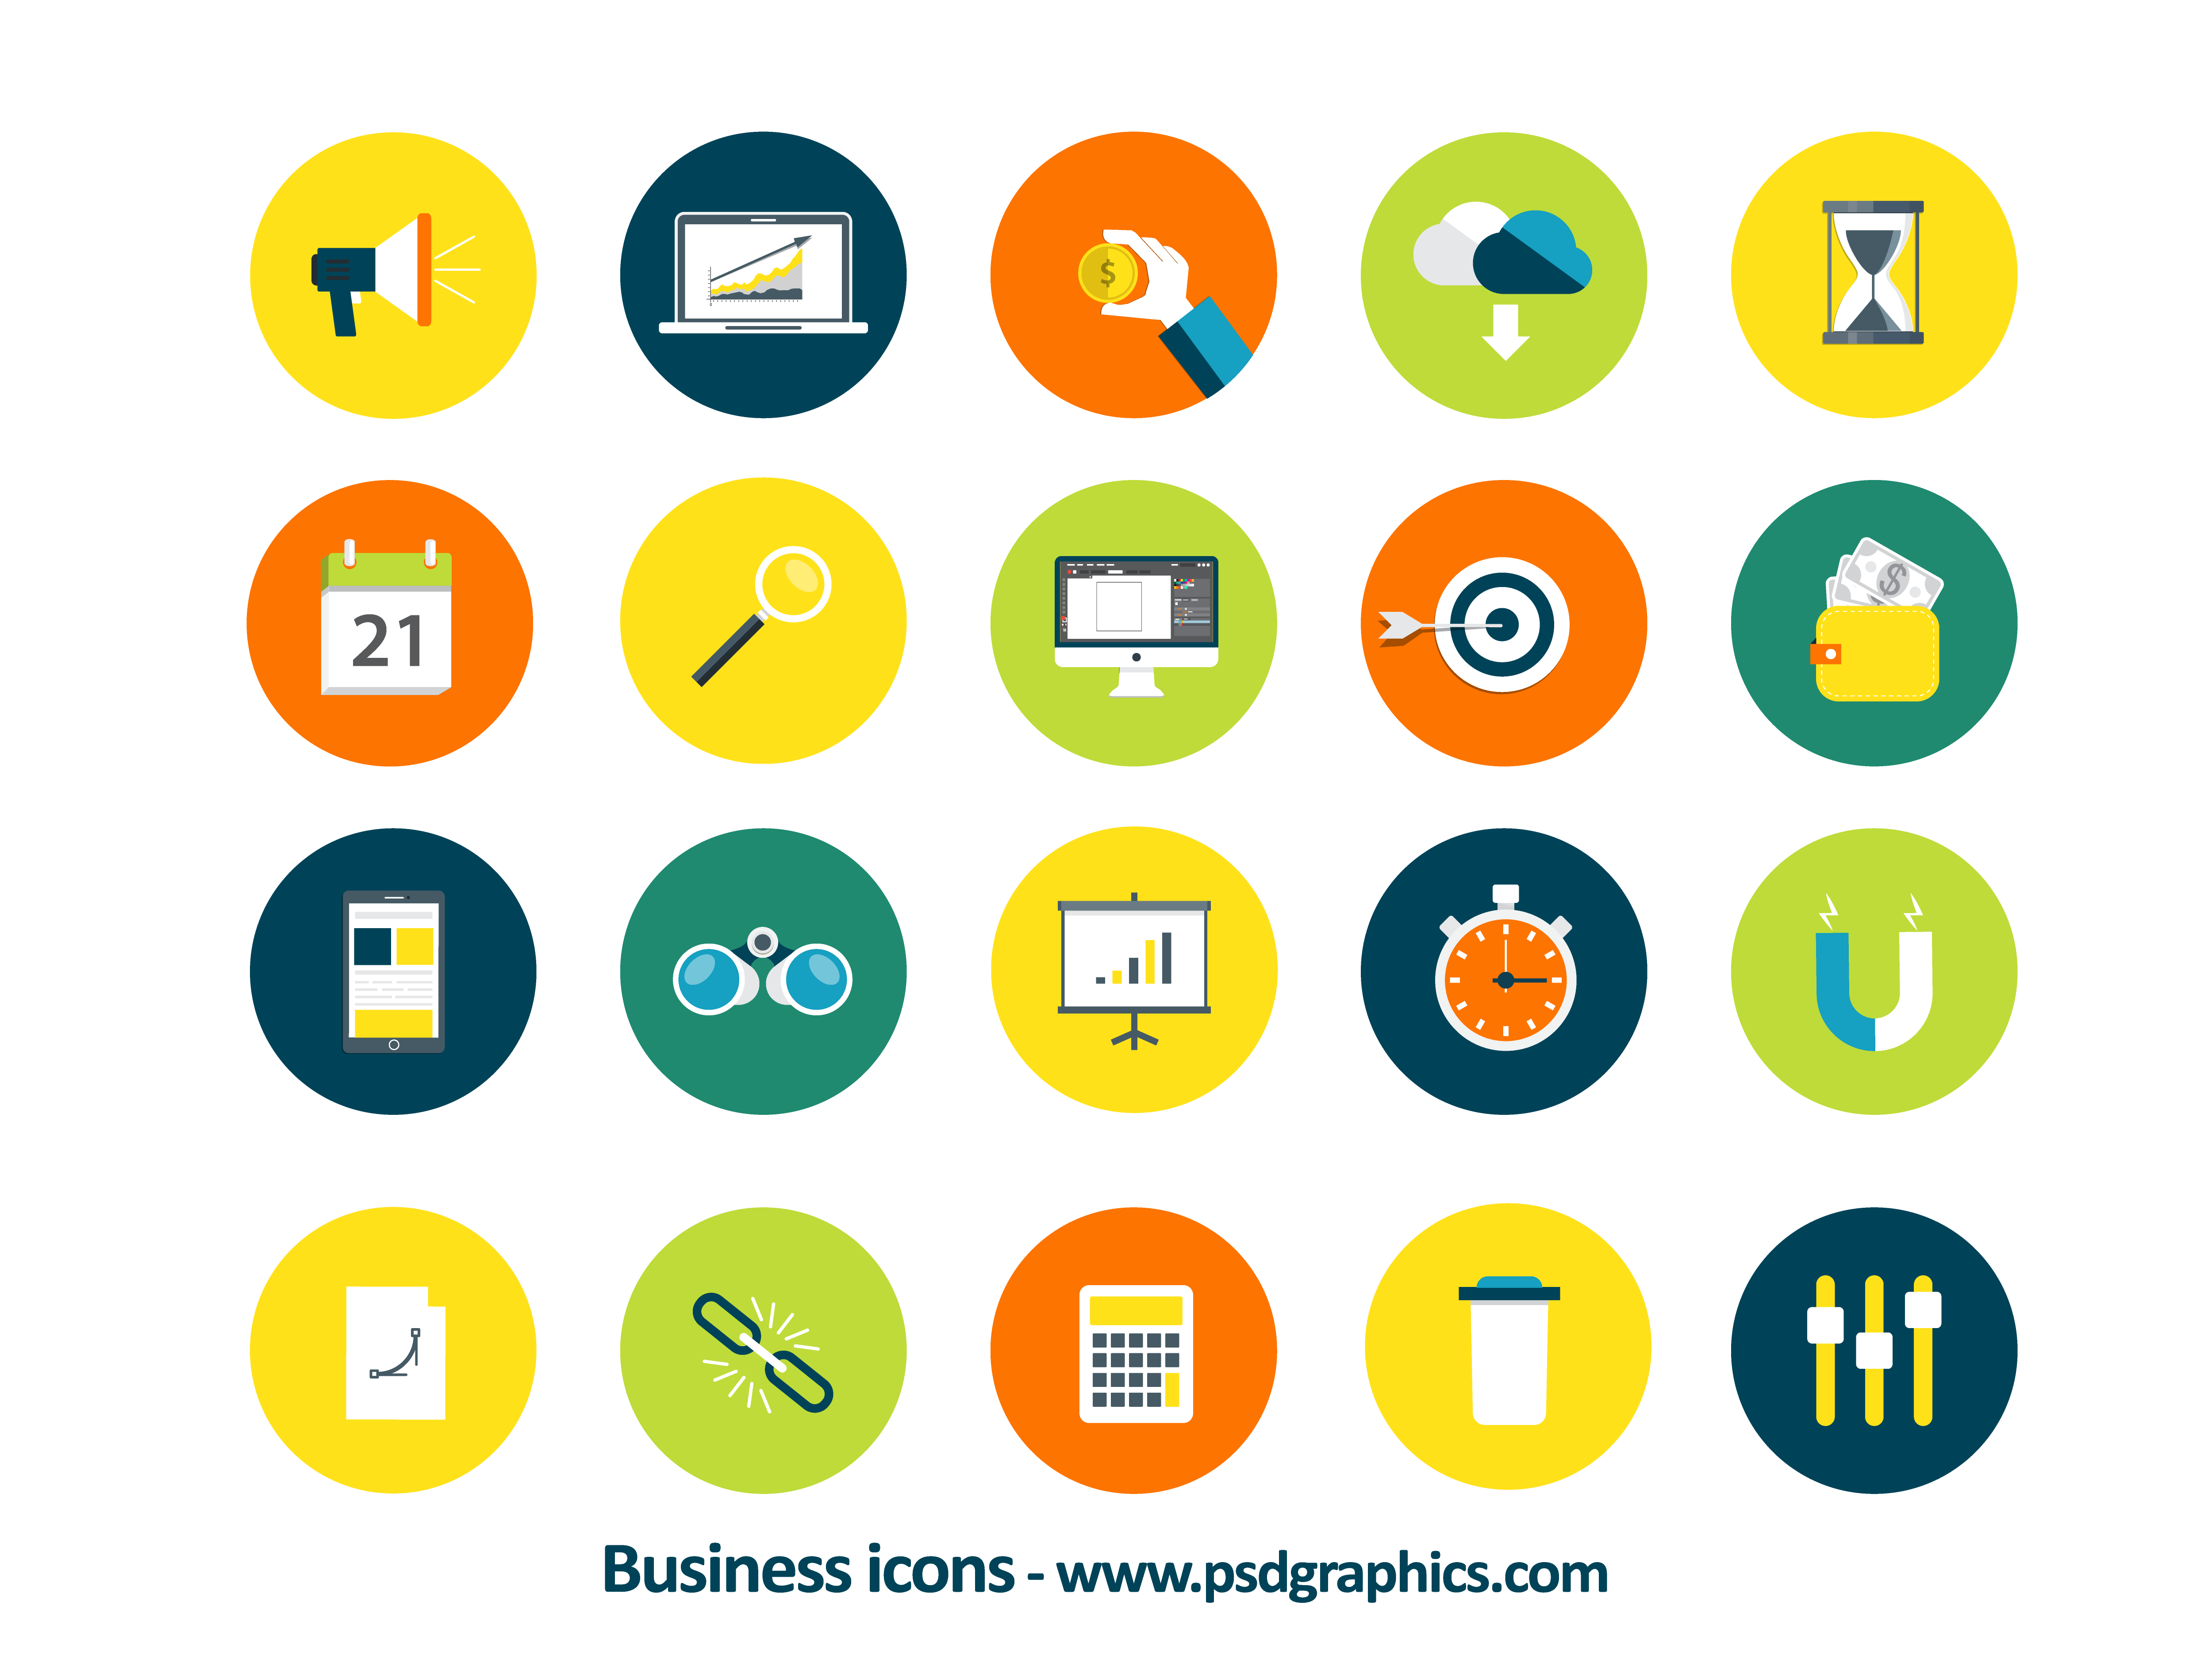 Icon Vector PNG - 109449